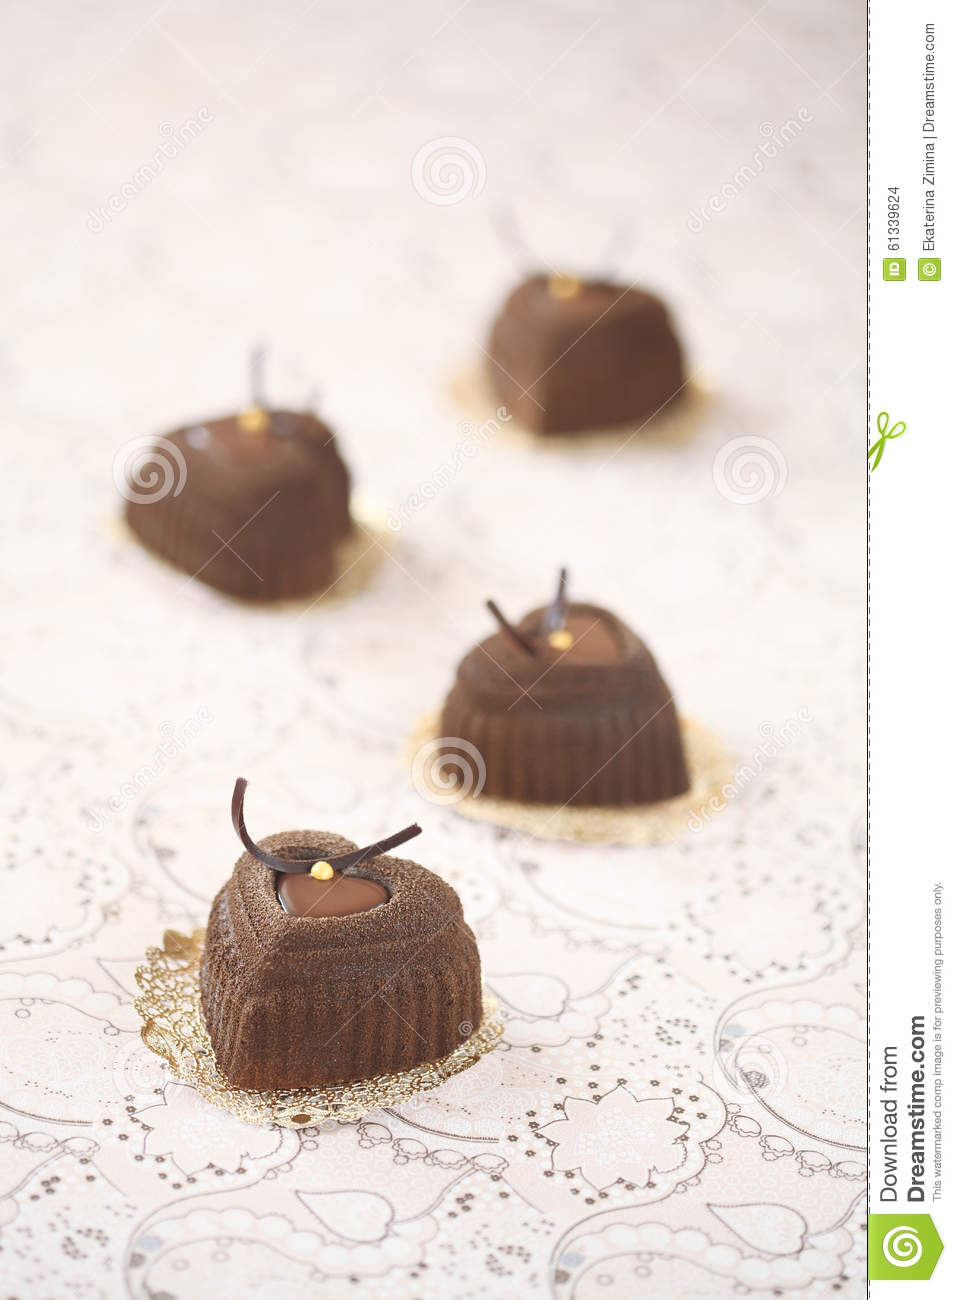 Chocolate Coffee Mousse Heart Cakes Stock Photo - Image: 61339624